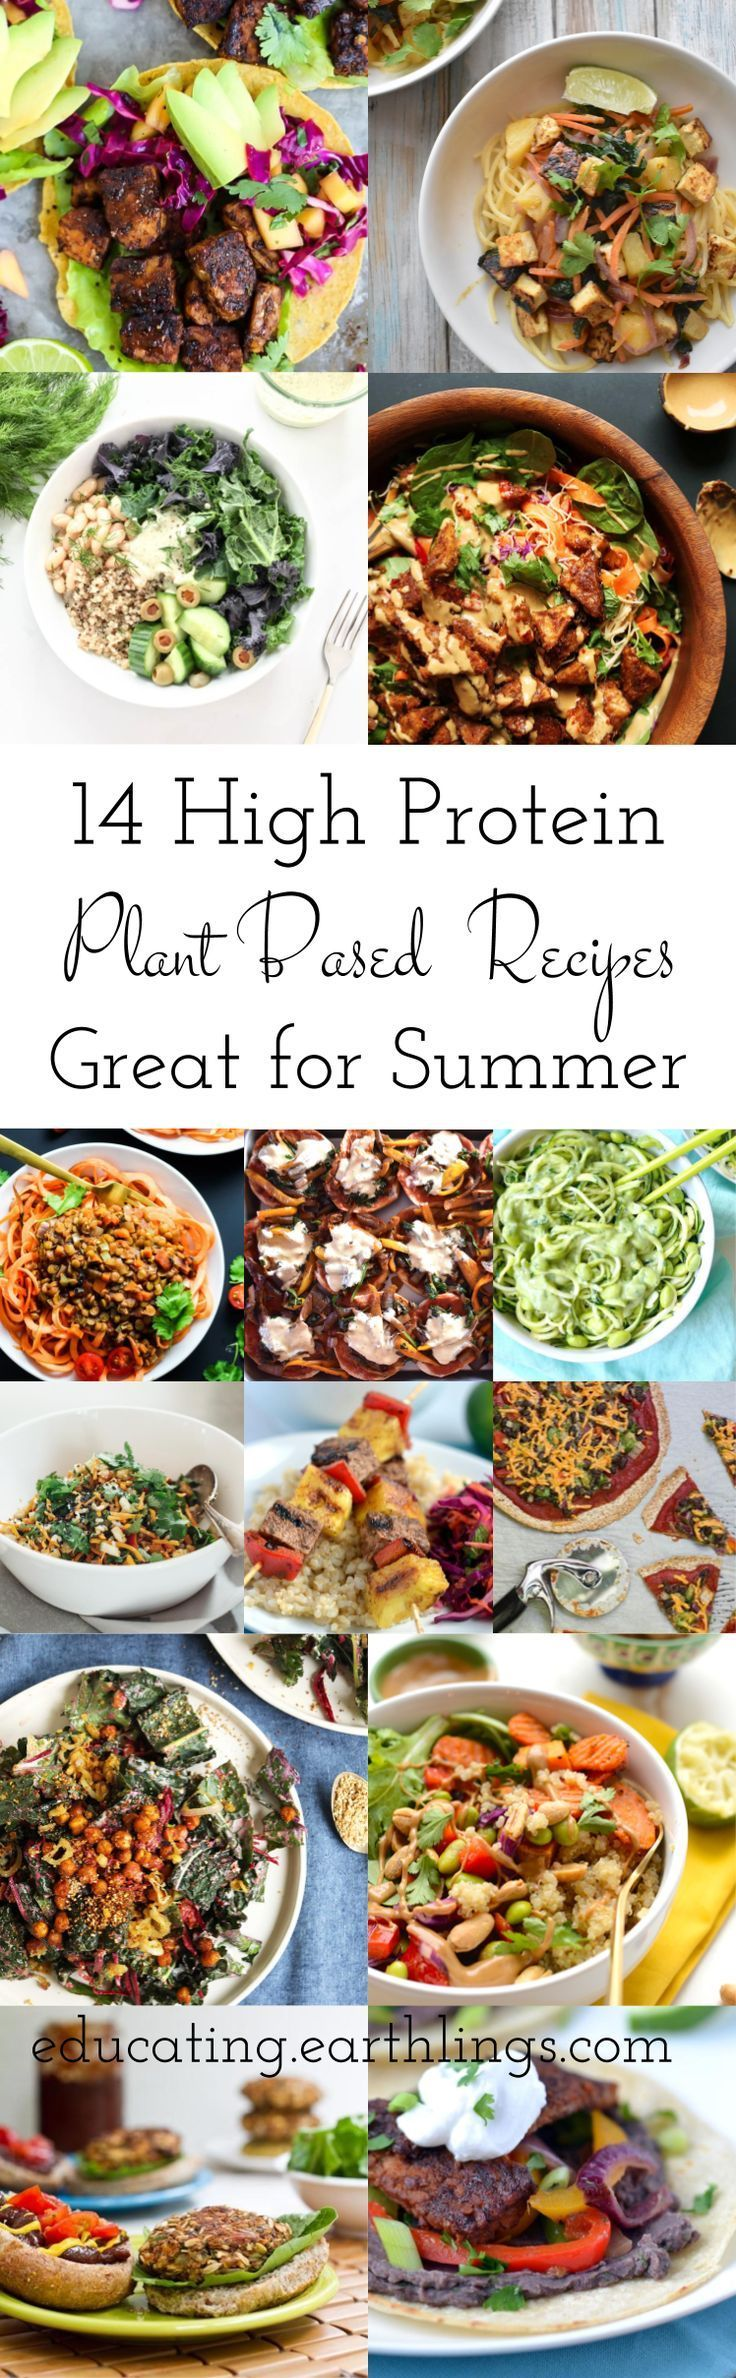 Photo of 14 High Protein Plant Based Recipes • Educating Earthlings